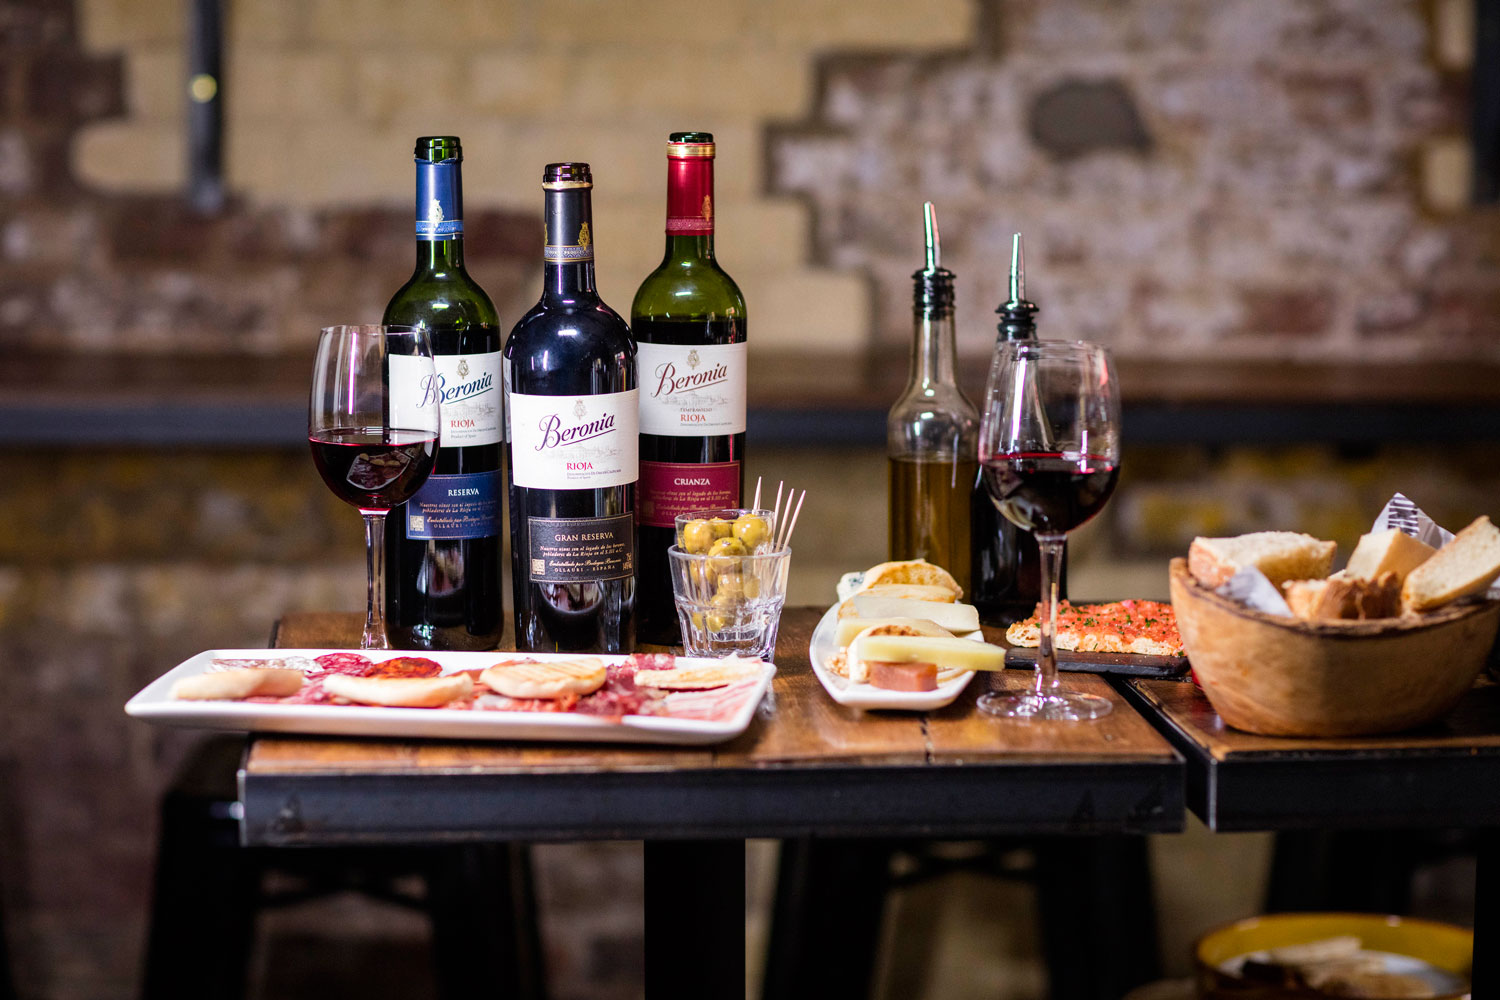 Beronia wines red wines on restaurant table with food